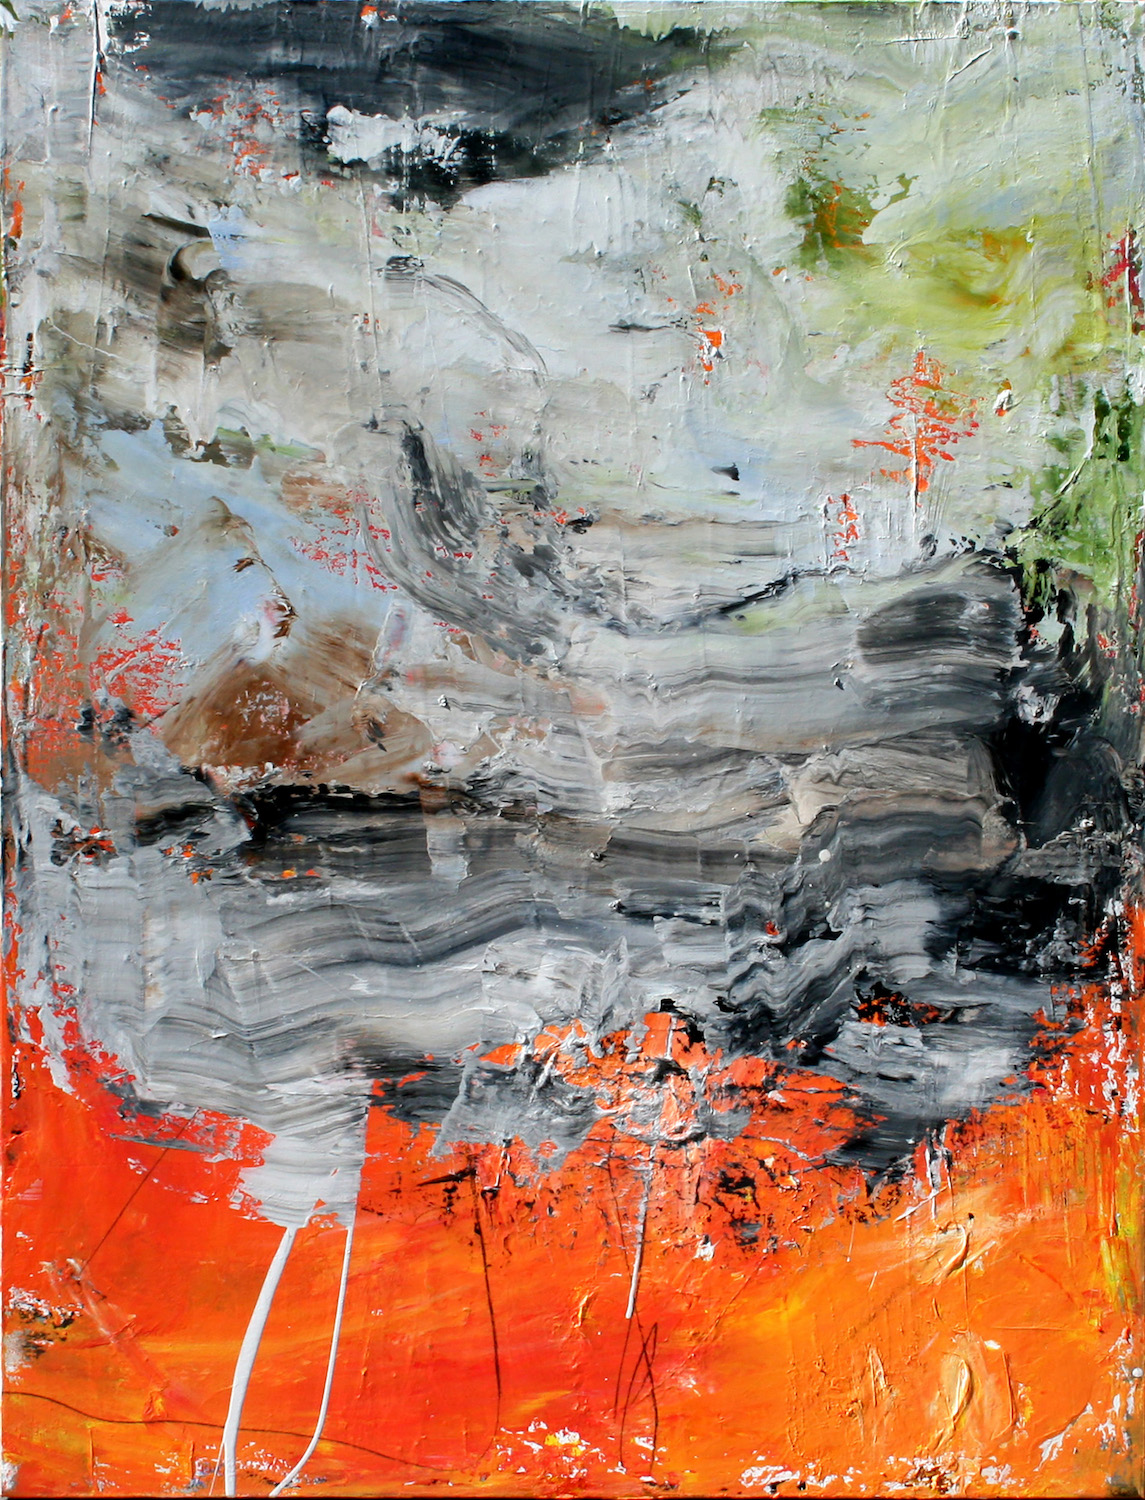 Untitled, 48 x 36, mixed media on canvas